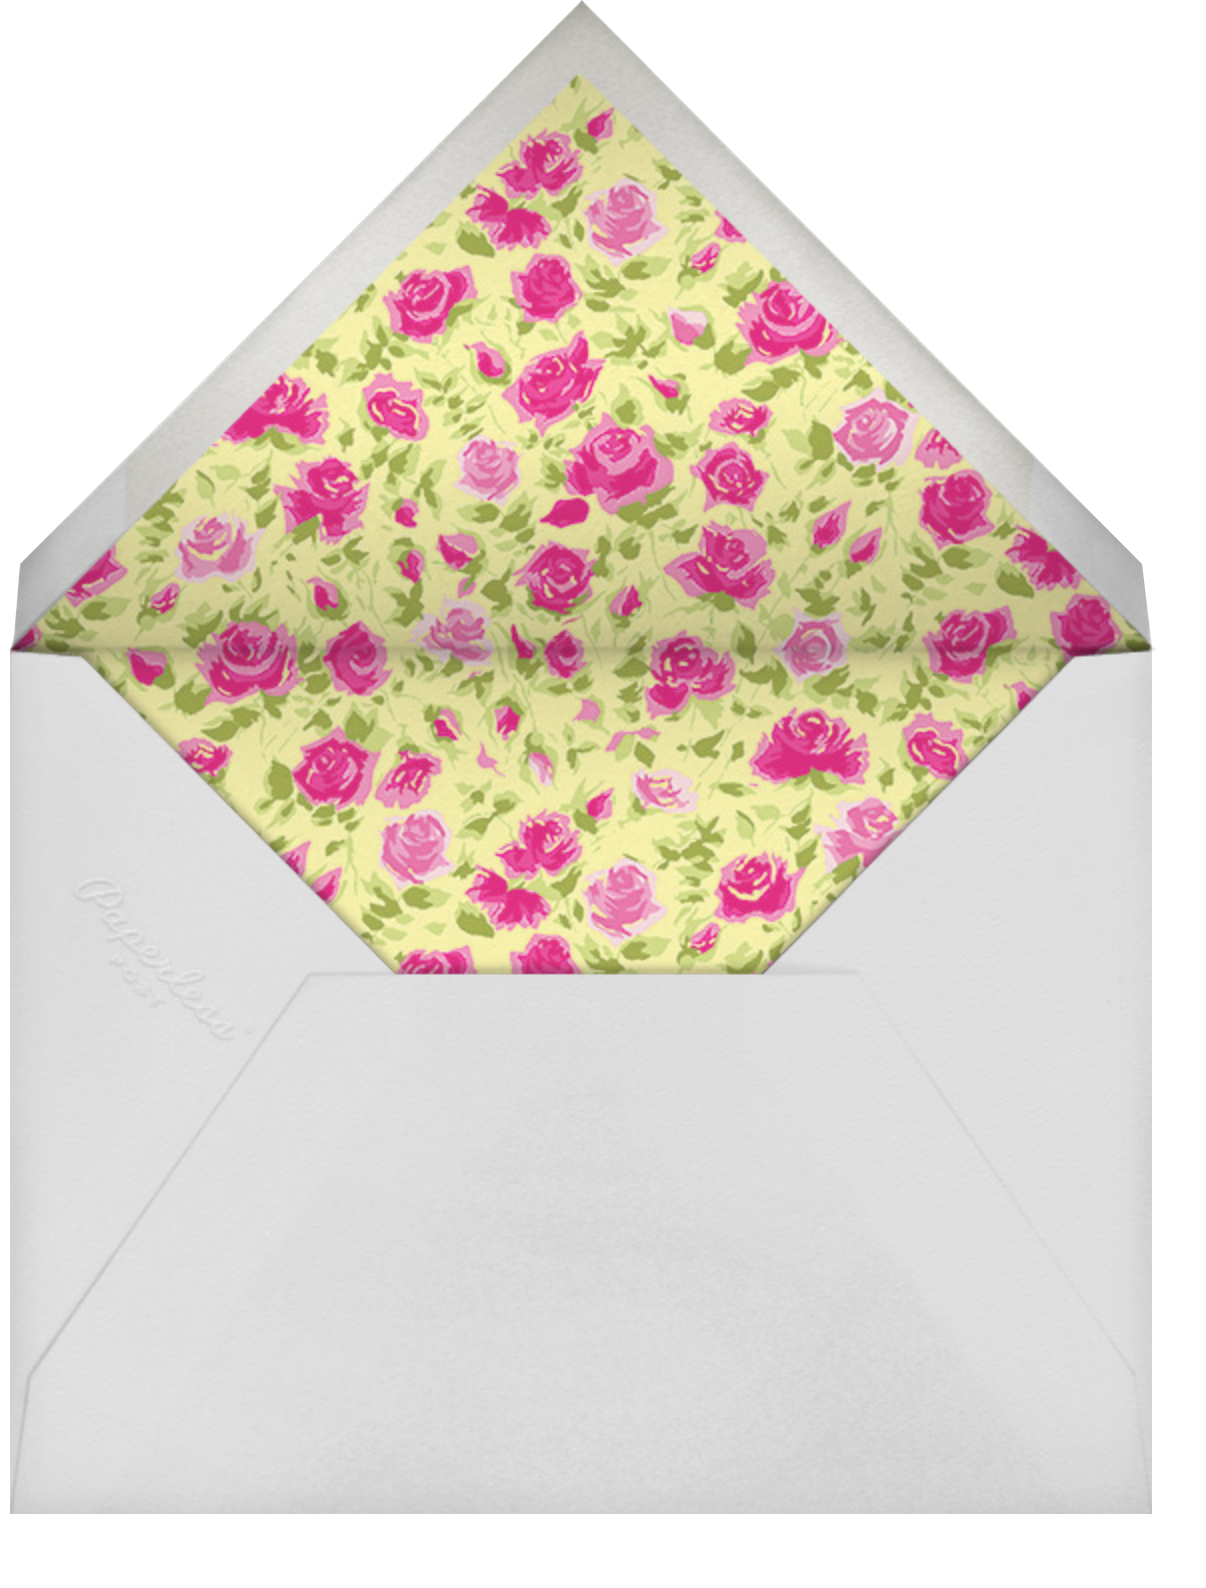 Ricardo's Bloom (Invitation) - Pink - Liberty - All - envelope back